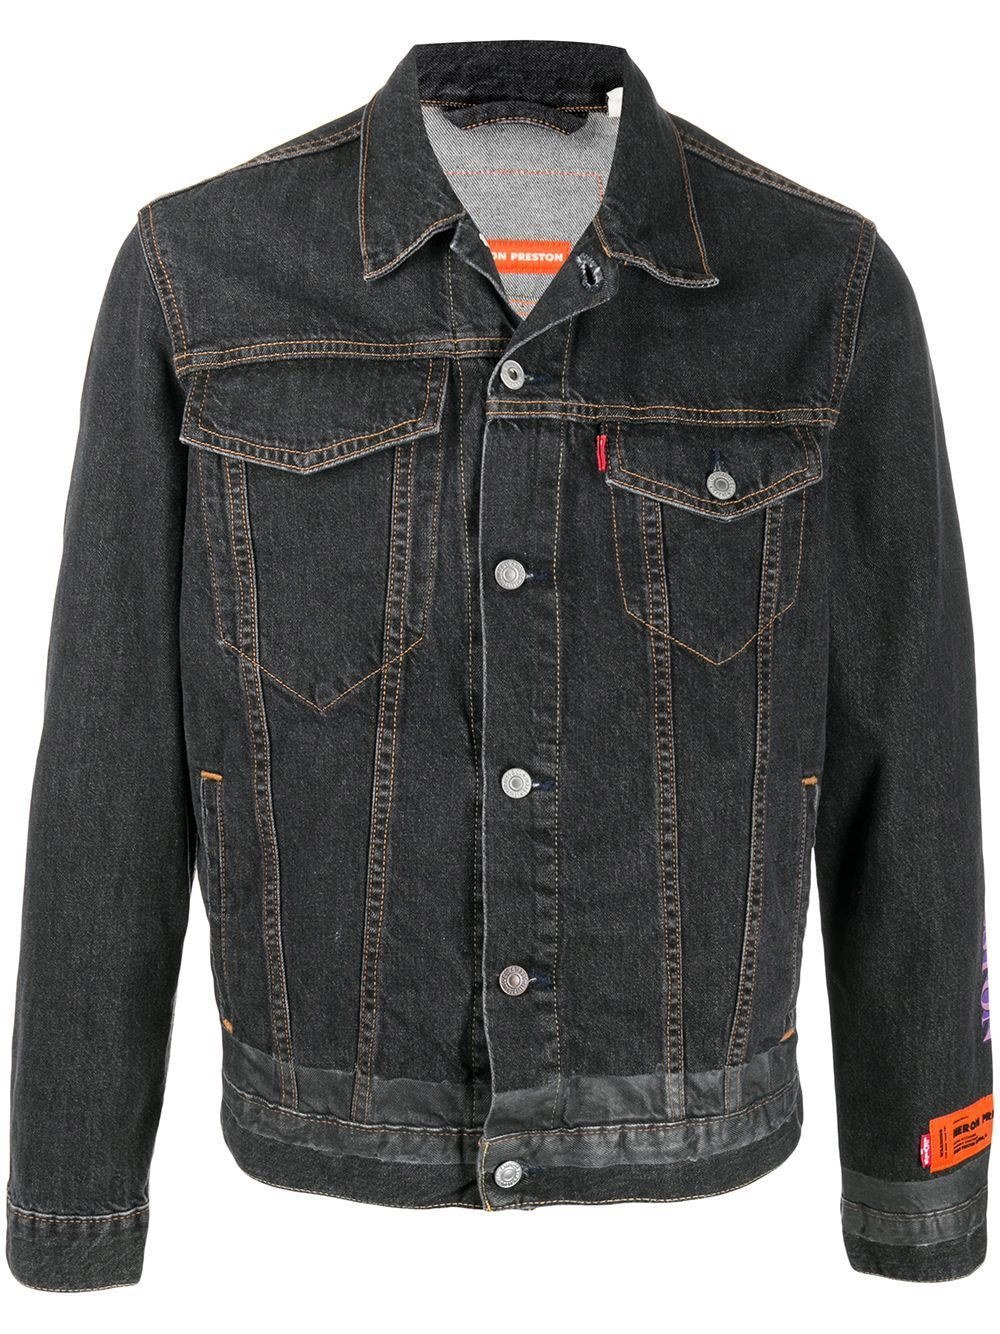 HERON PRESTON Levi's Trucker Jacket Black - Maison De Fashion